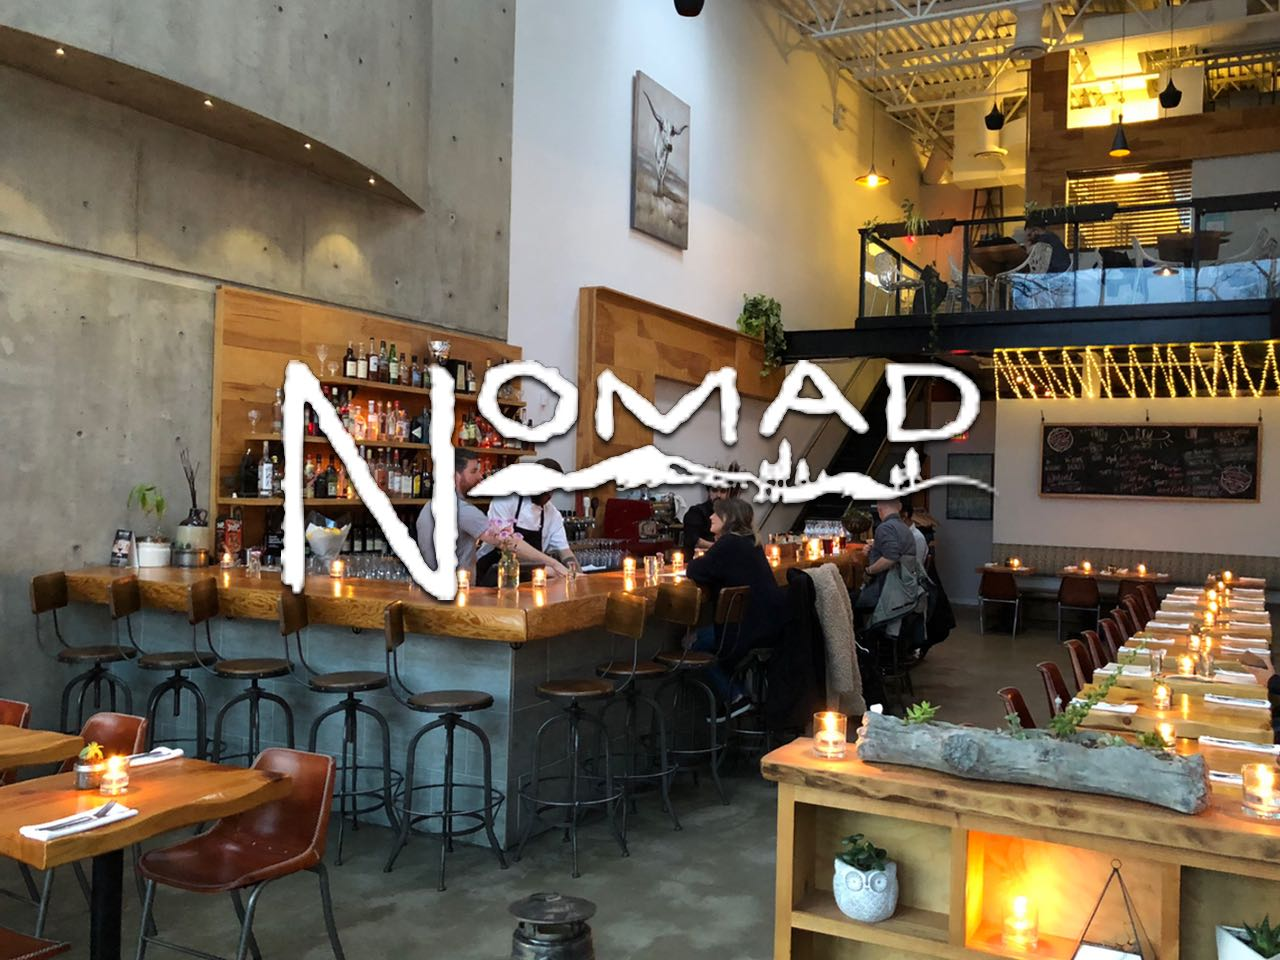 Nomad Restaurant All Day Happy Hour At Nomad Restaurant On Main Street